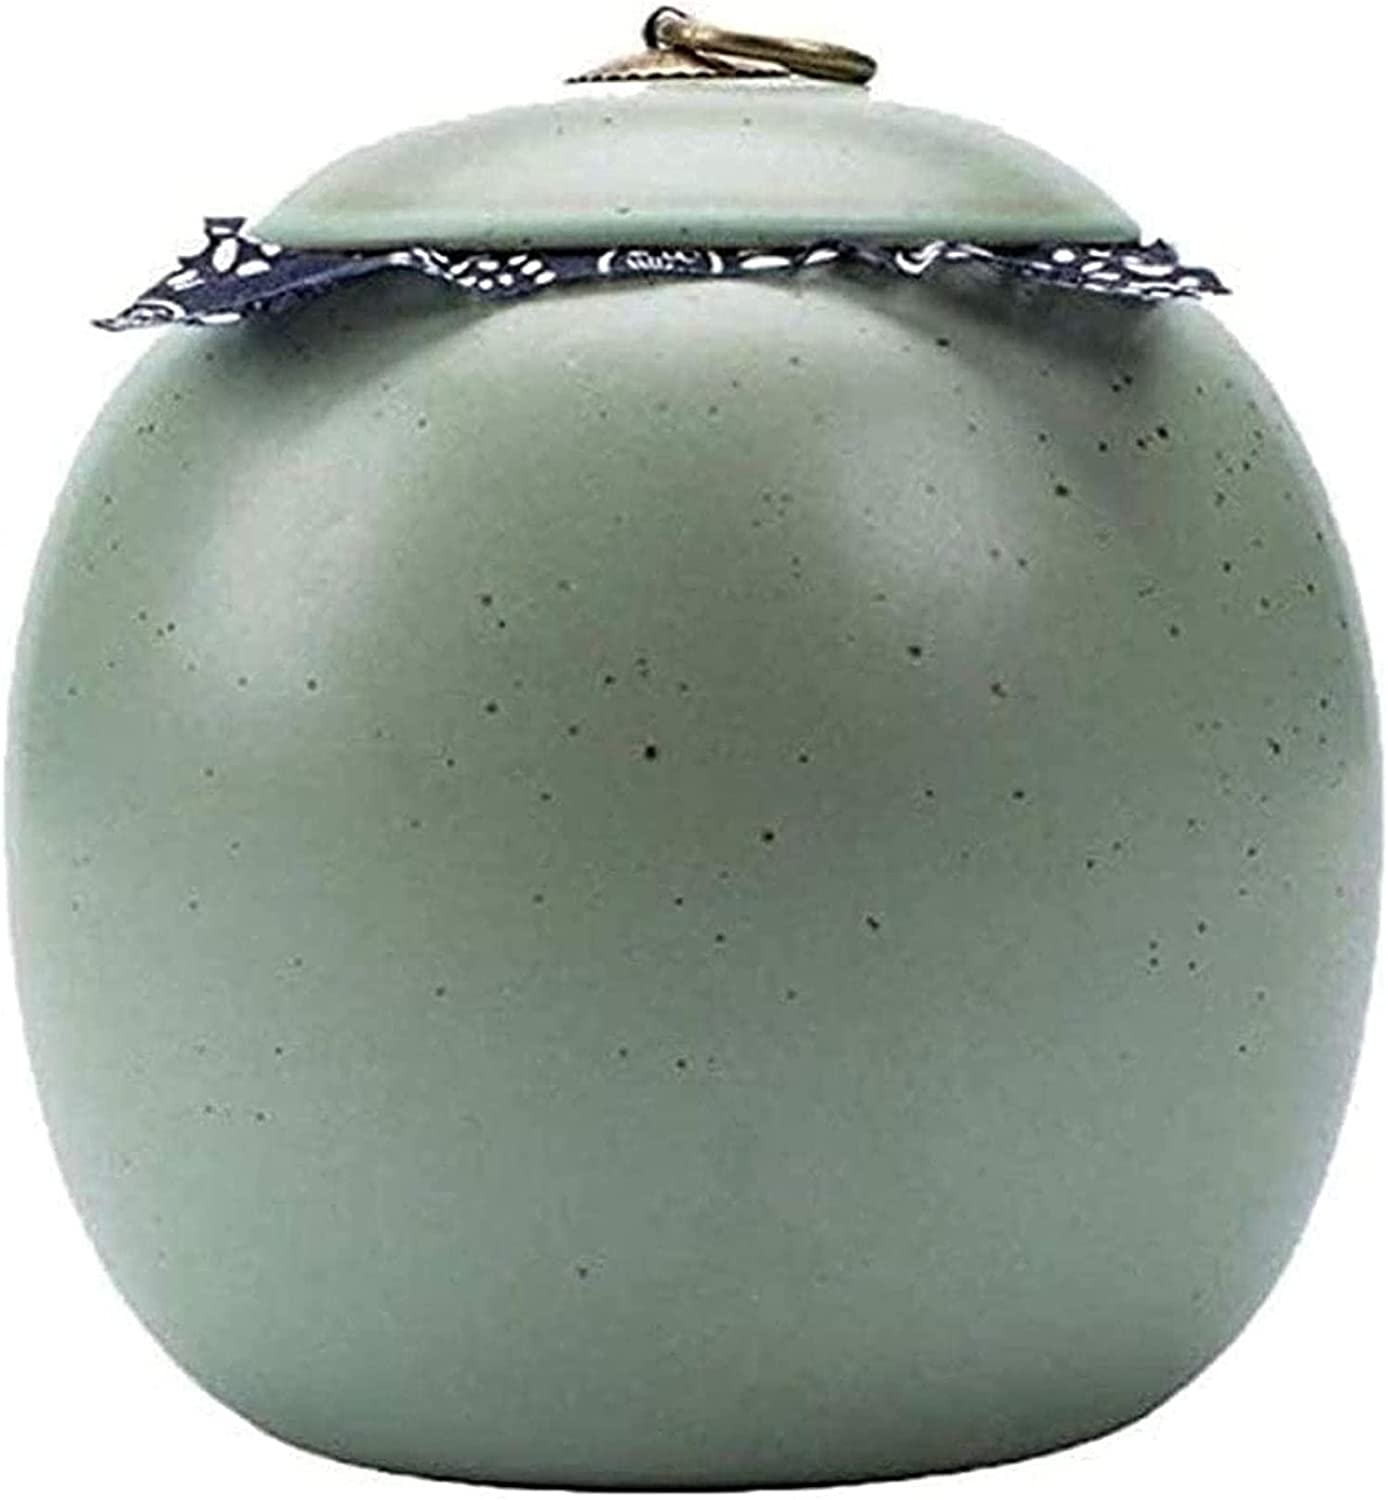 MTFZD At the price of surprise Low price Funeral Supplies Mini Urns Human Keepsake Ashes for Adult